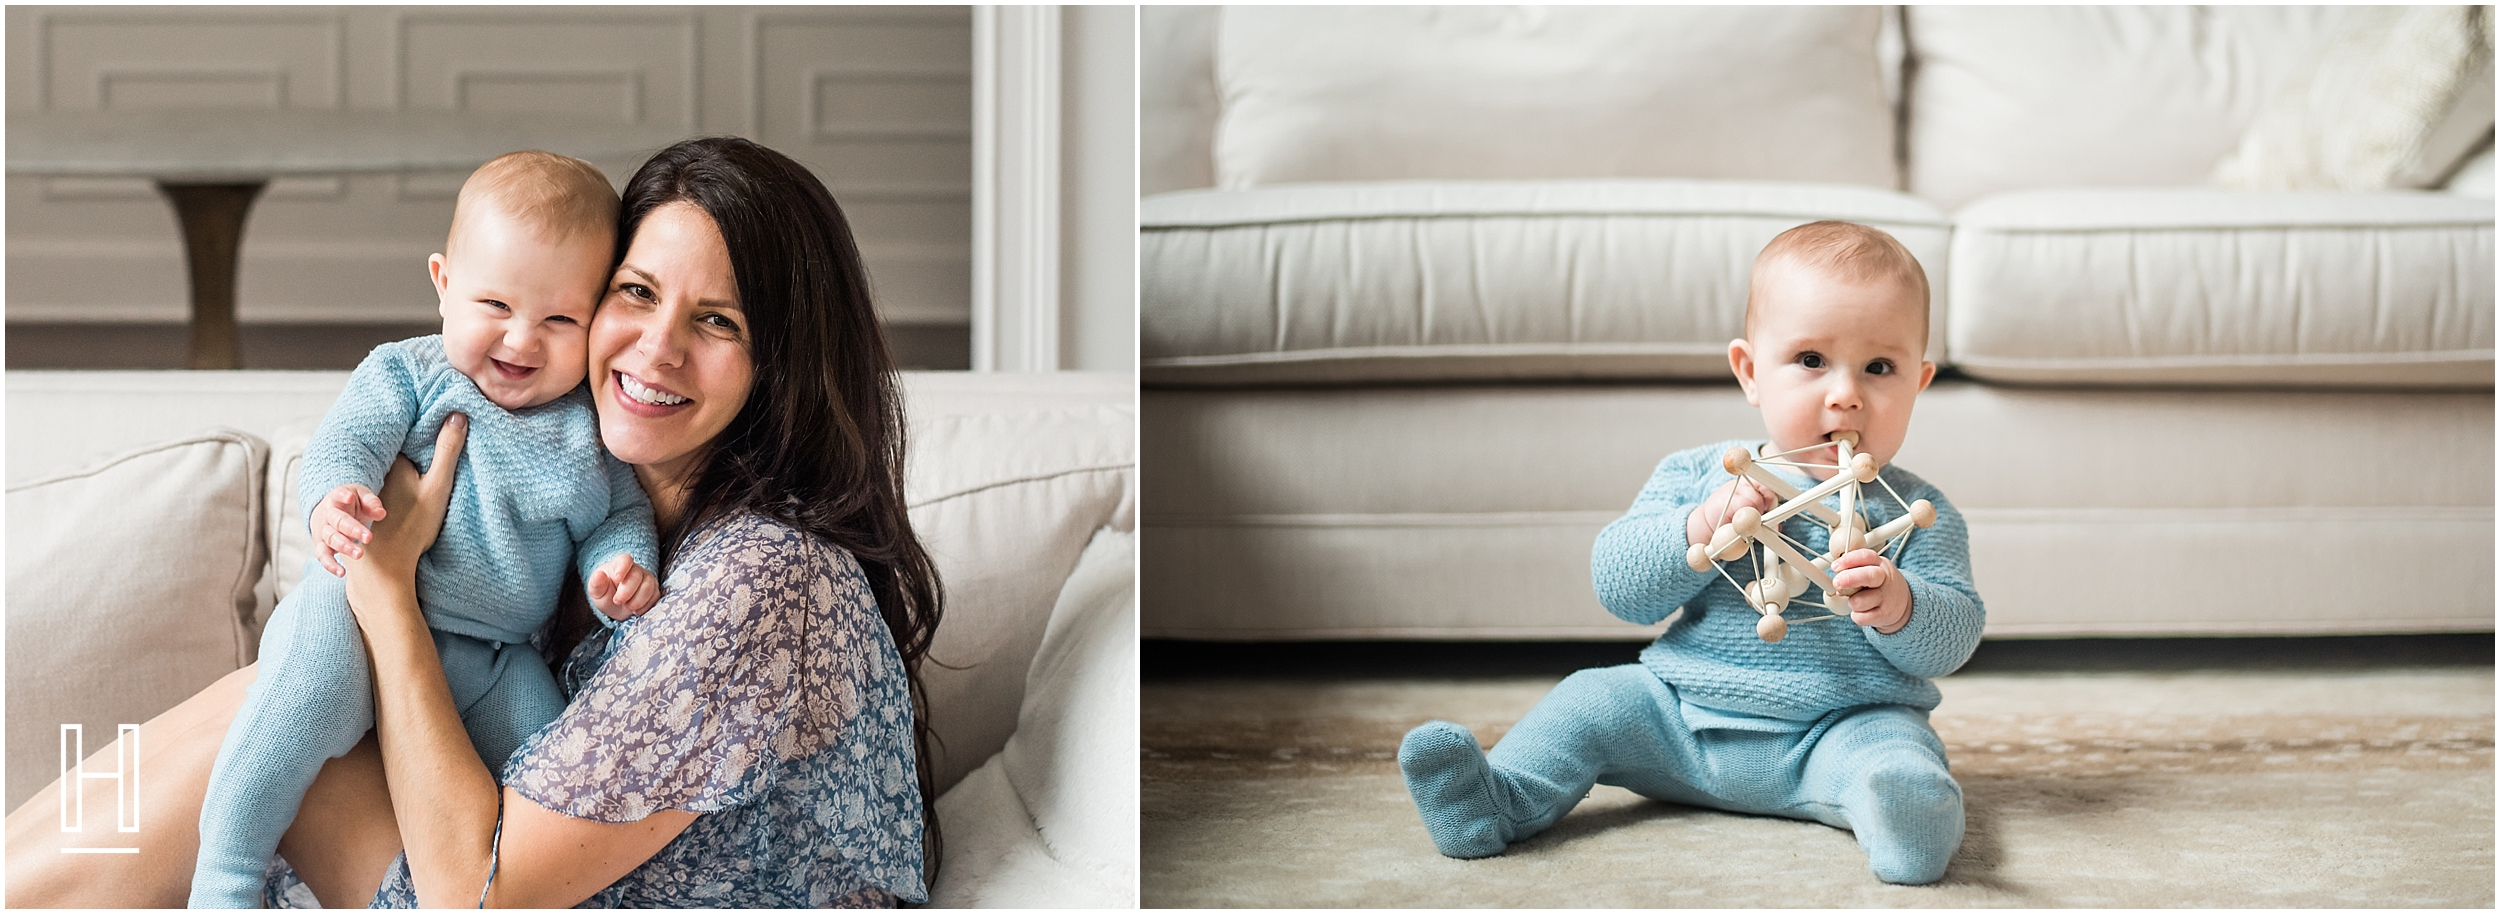 atlanta_newborn_photographer-photography_0457.jpg